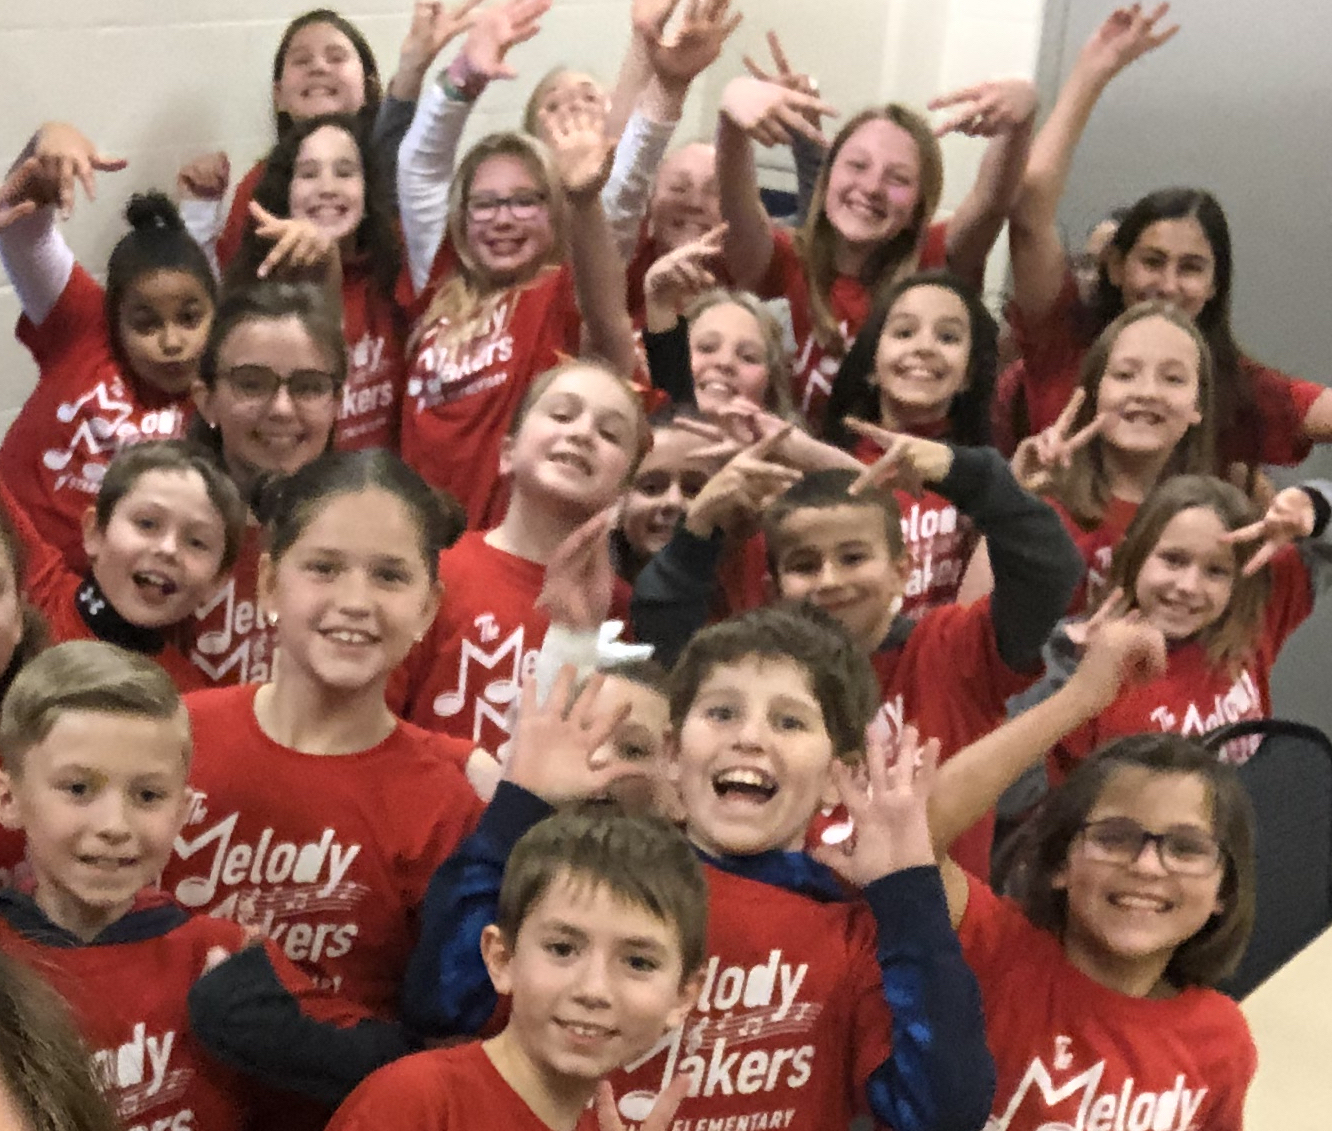 Melody Makers Youth Choir - Starr Elementary